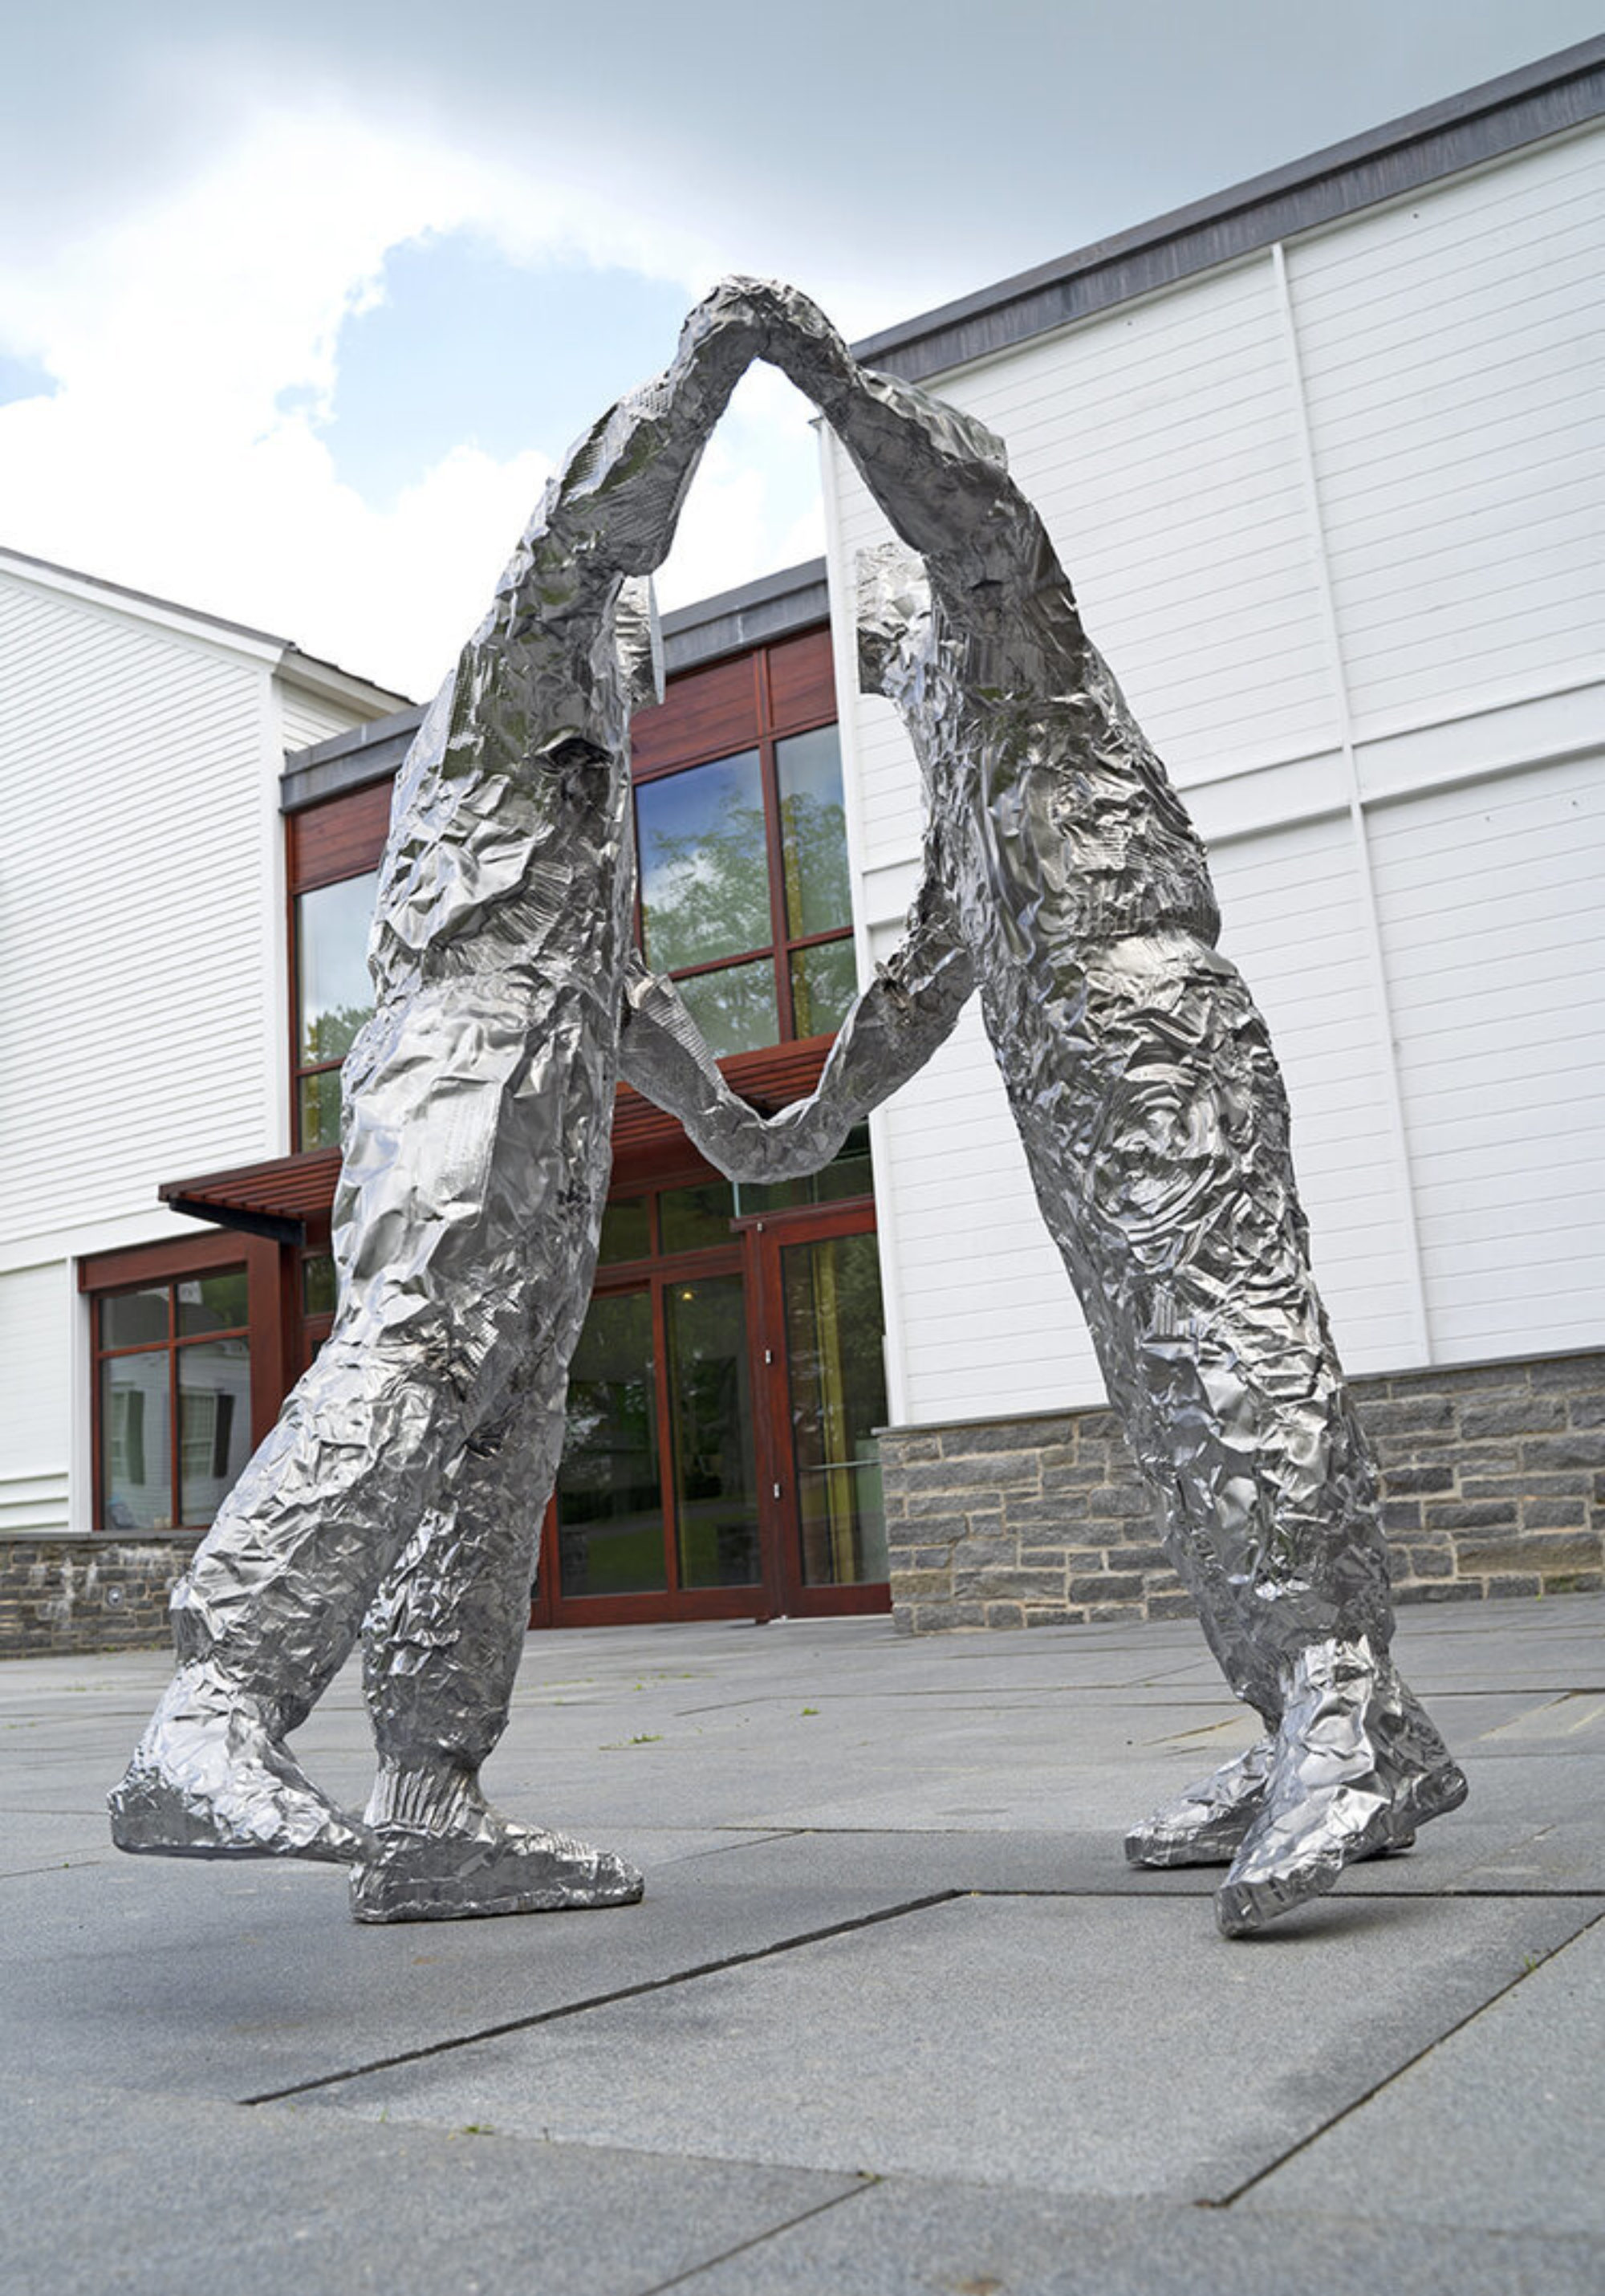 Two figures made out of crumpled baking pans cast in polished stainless steel with a large white building in the background